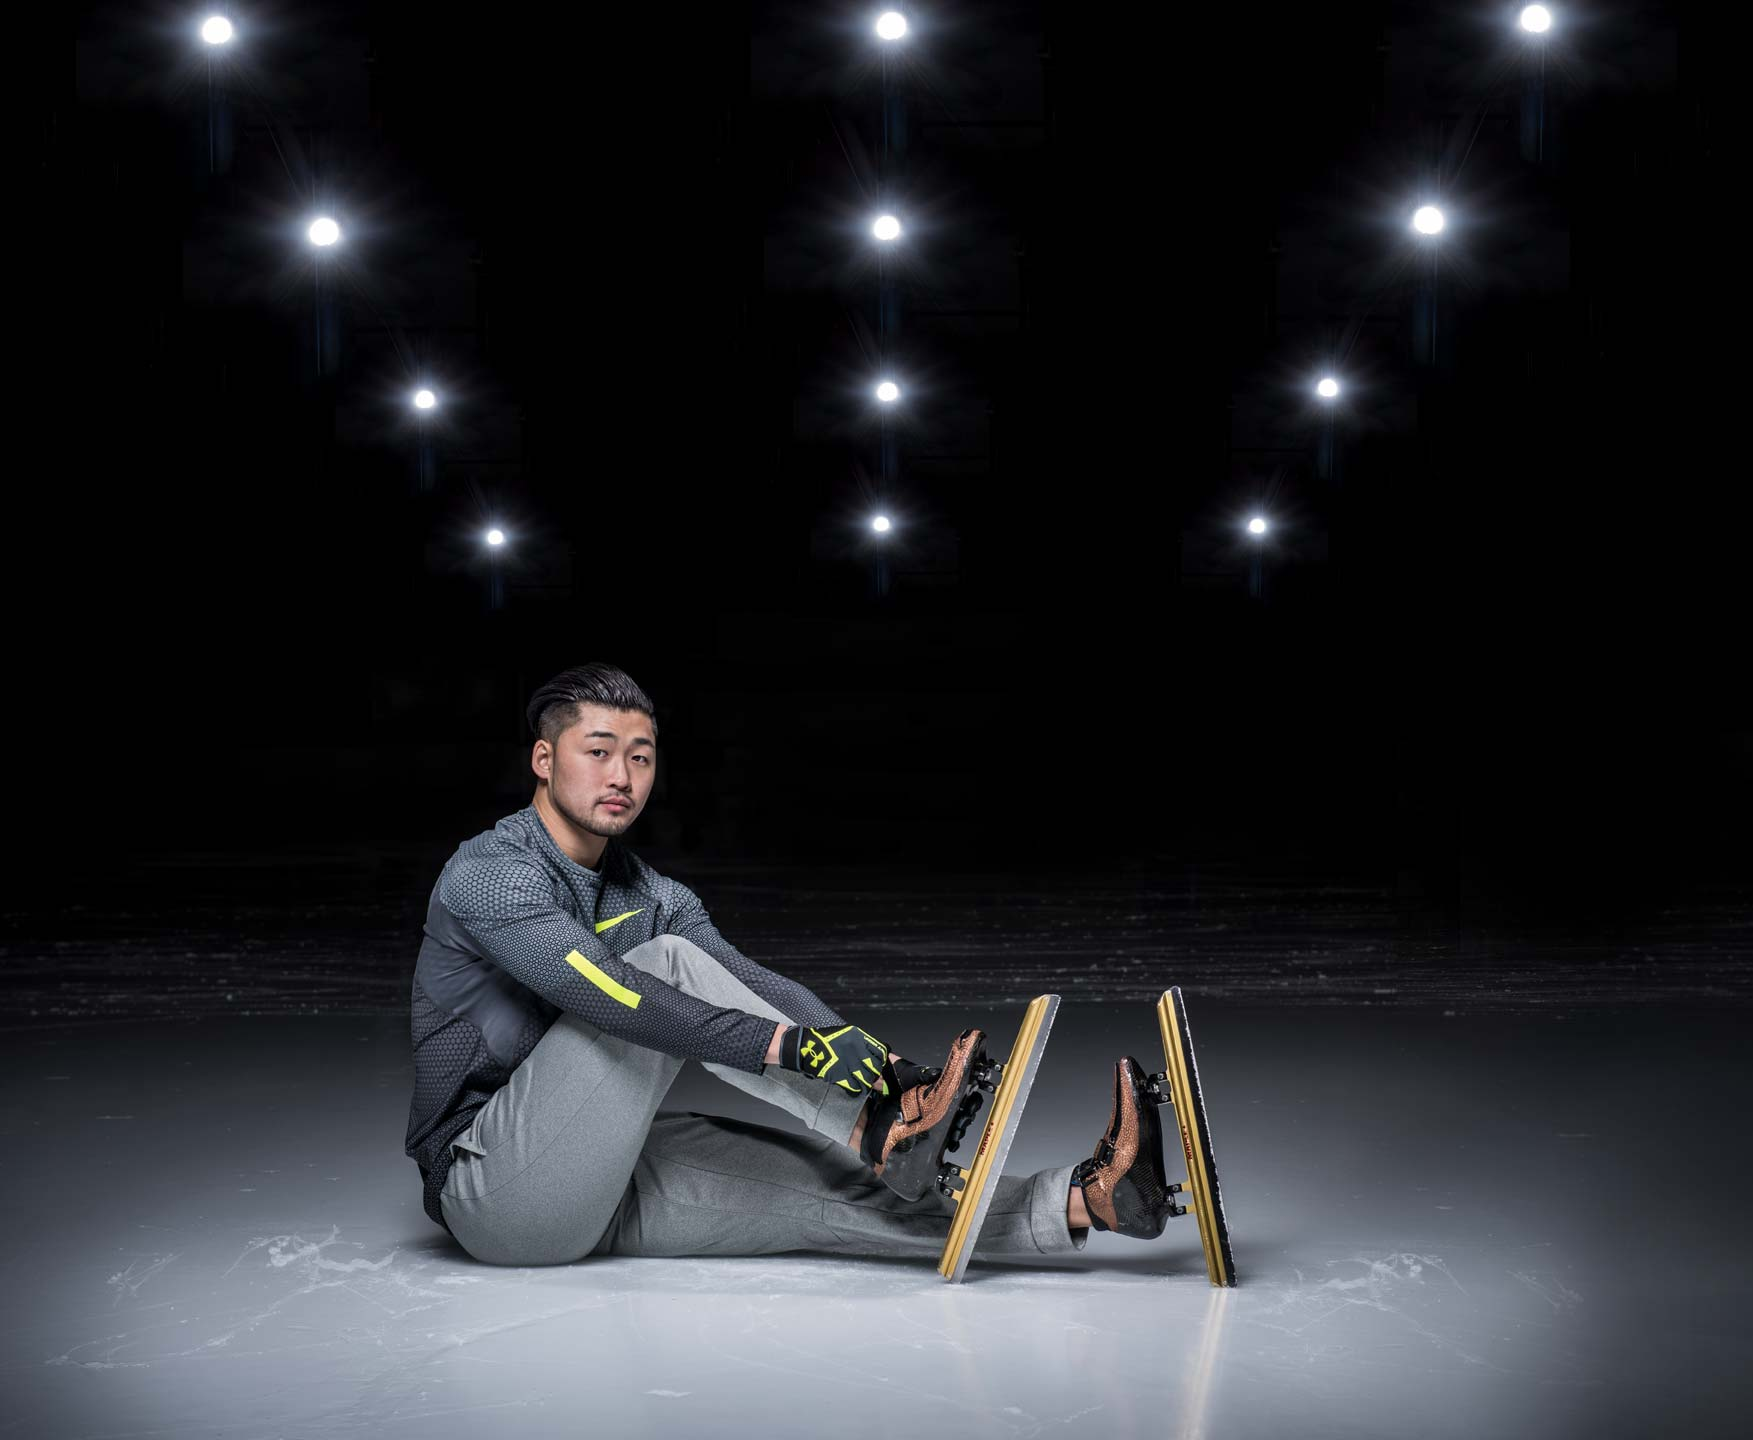 Speed skater Simon Cho adjusting his skates while seated on the ice